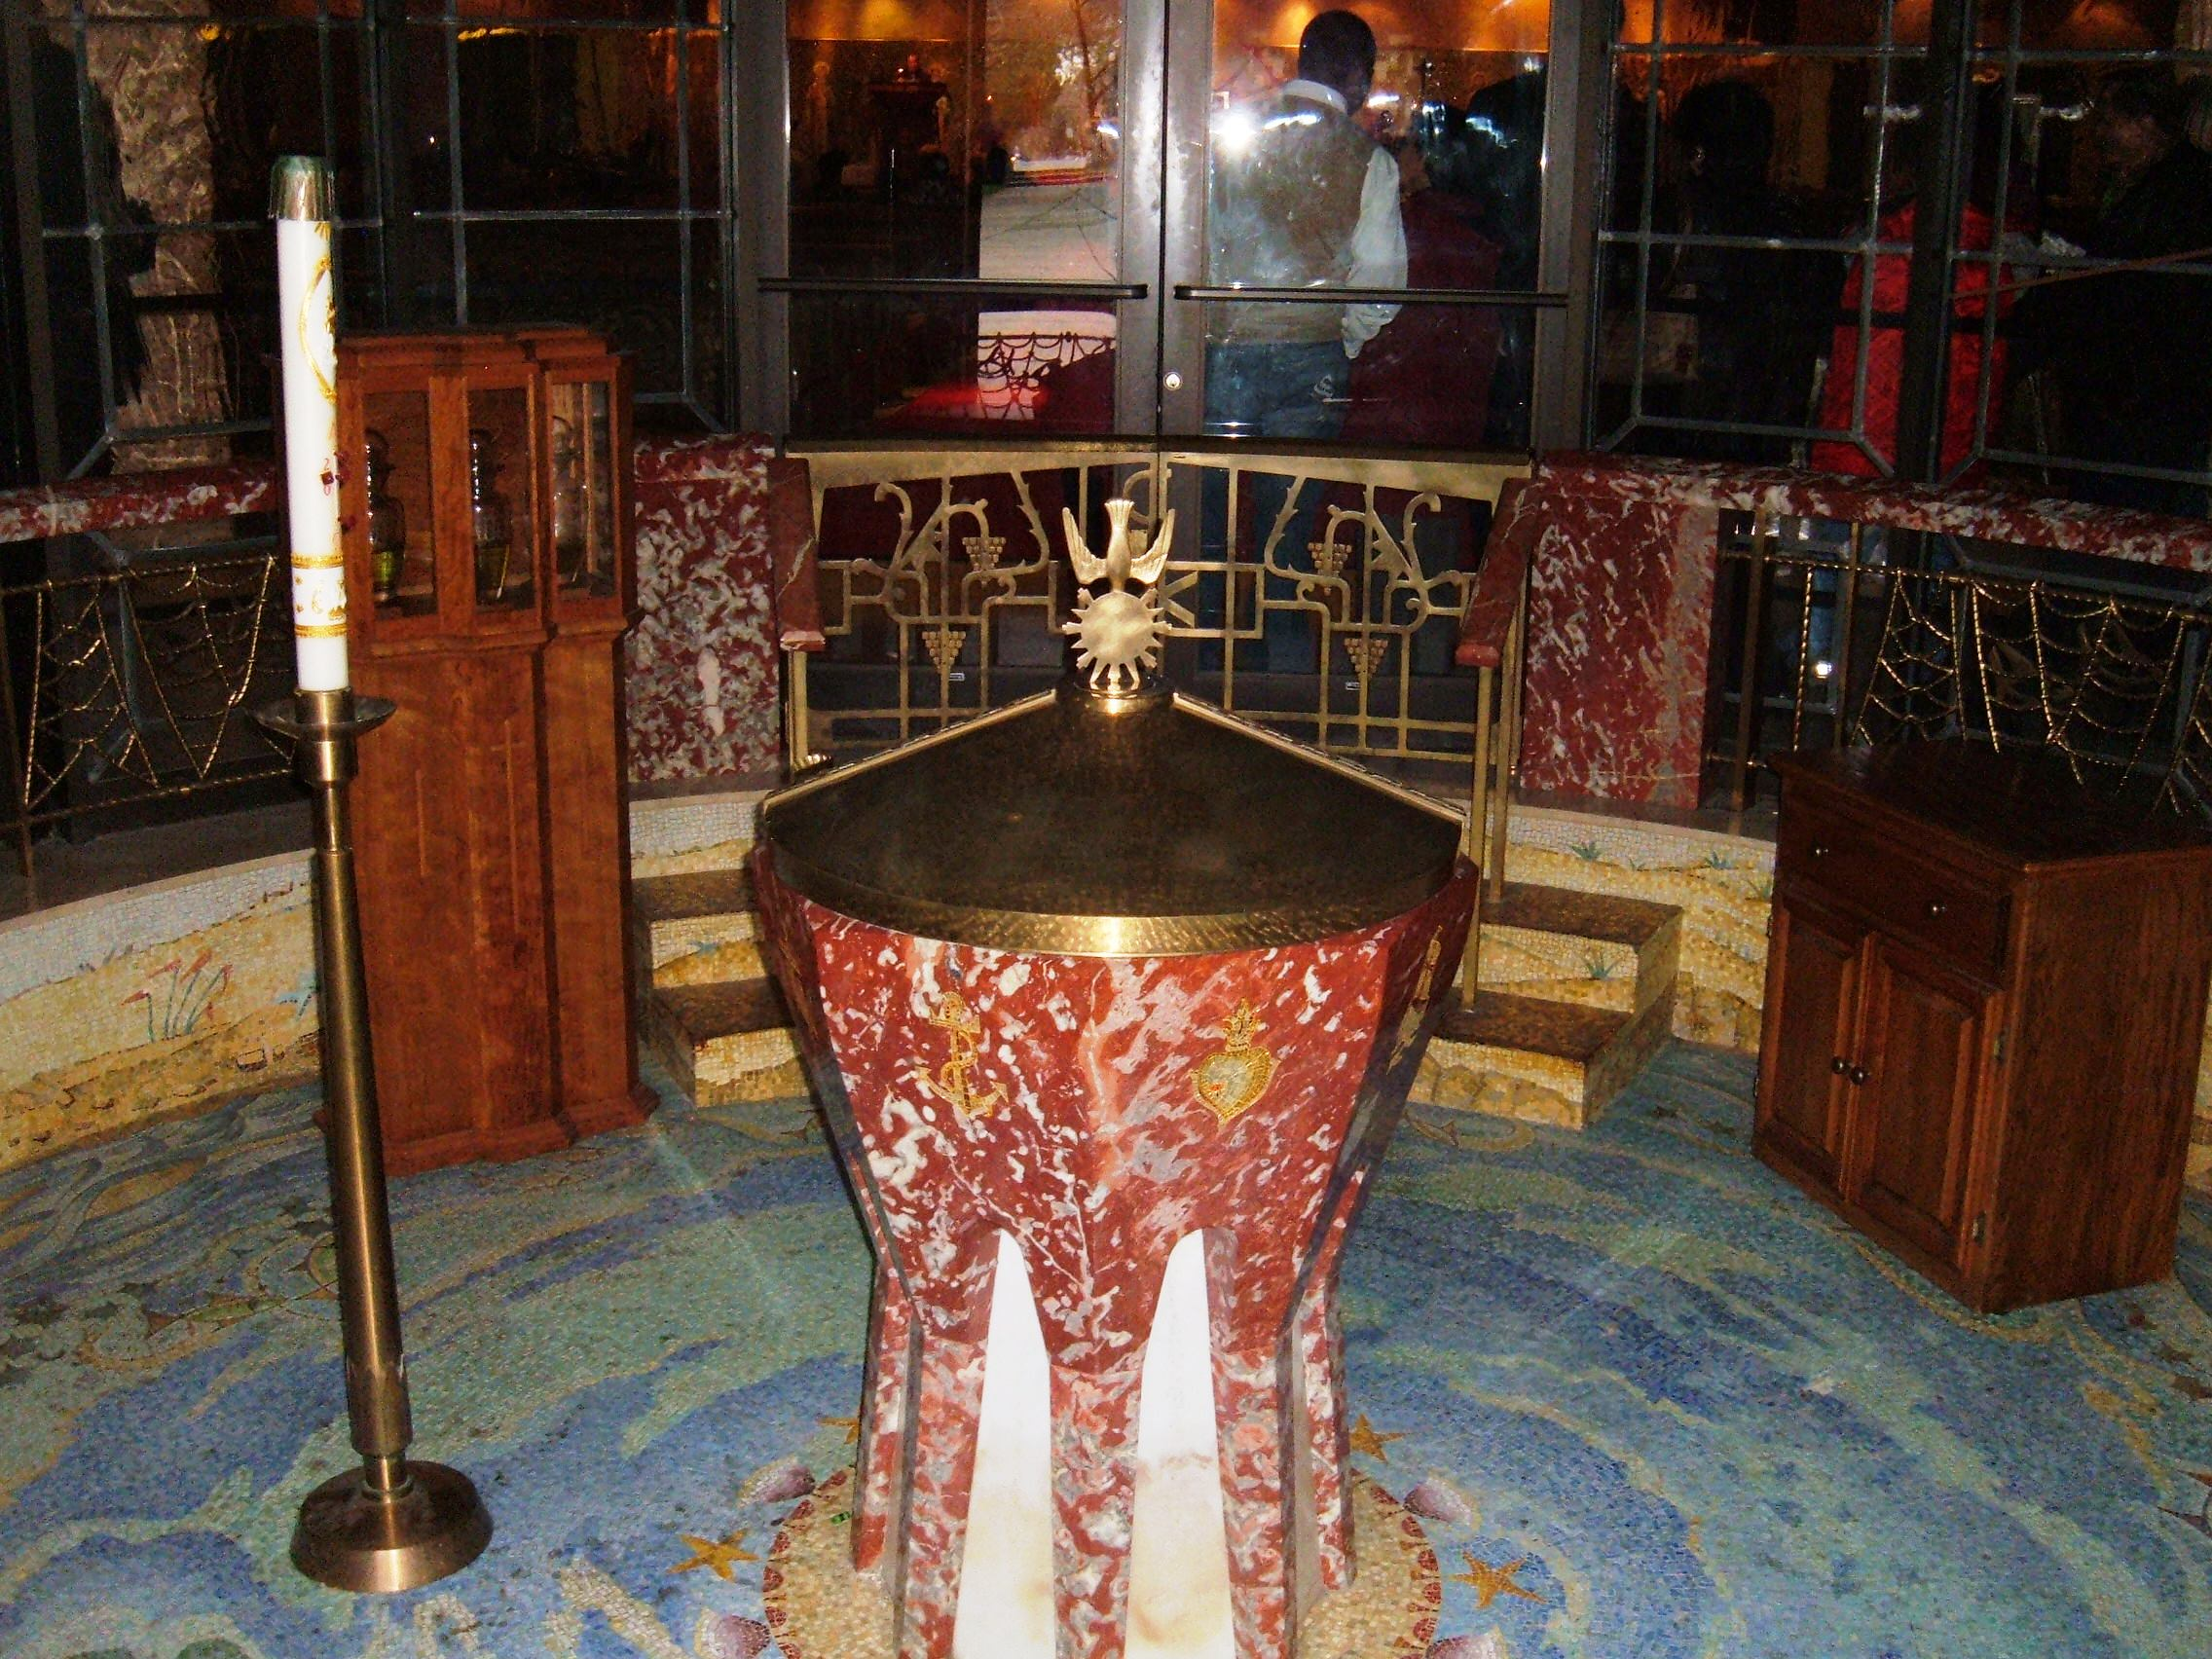 File:St. Matthew Catholic Church, San Mateo Baptismal Font.JPG